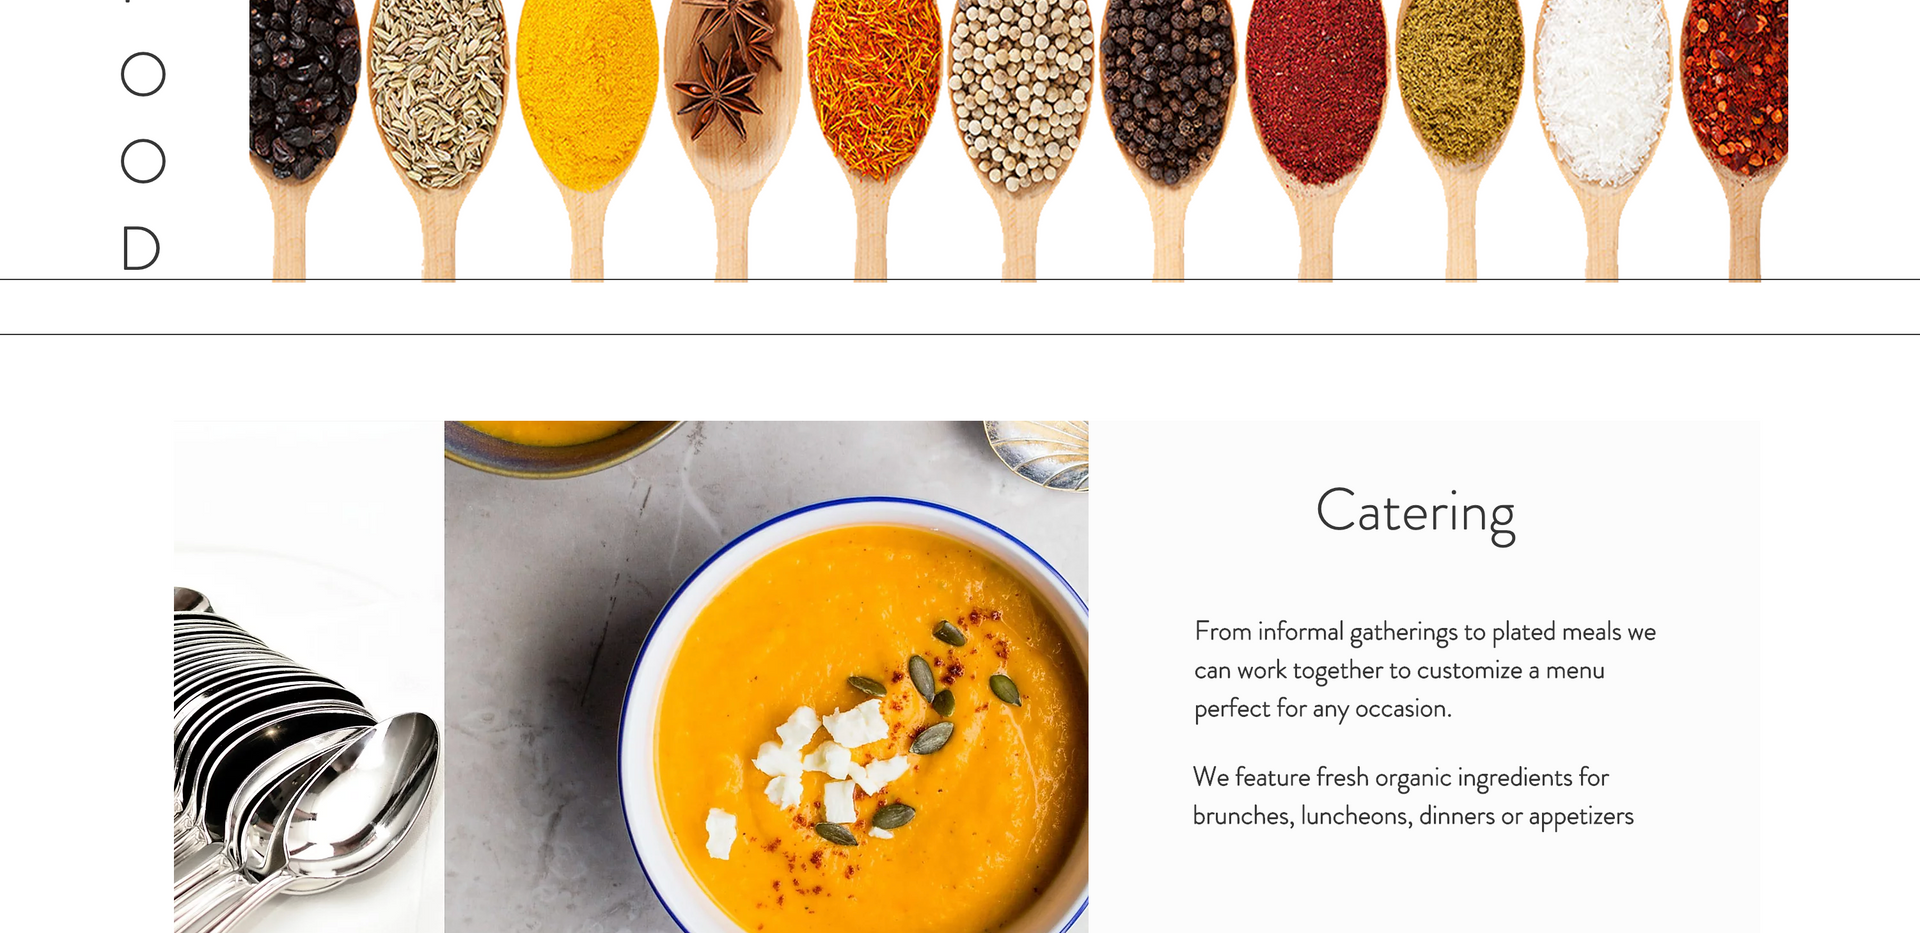 Catering Page